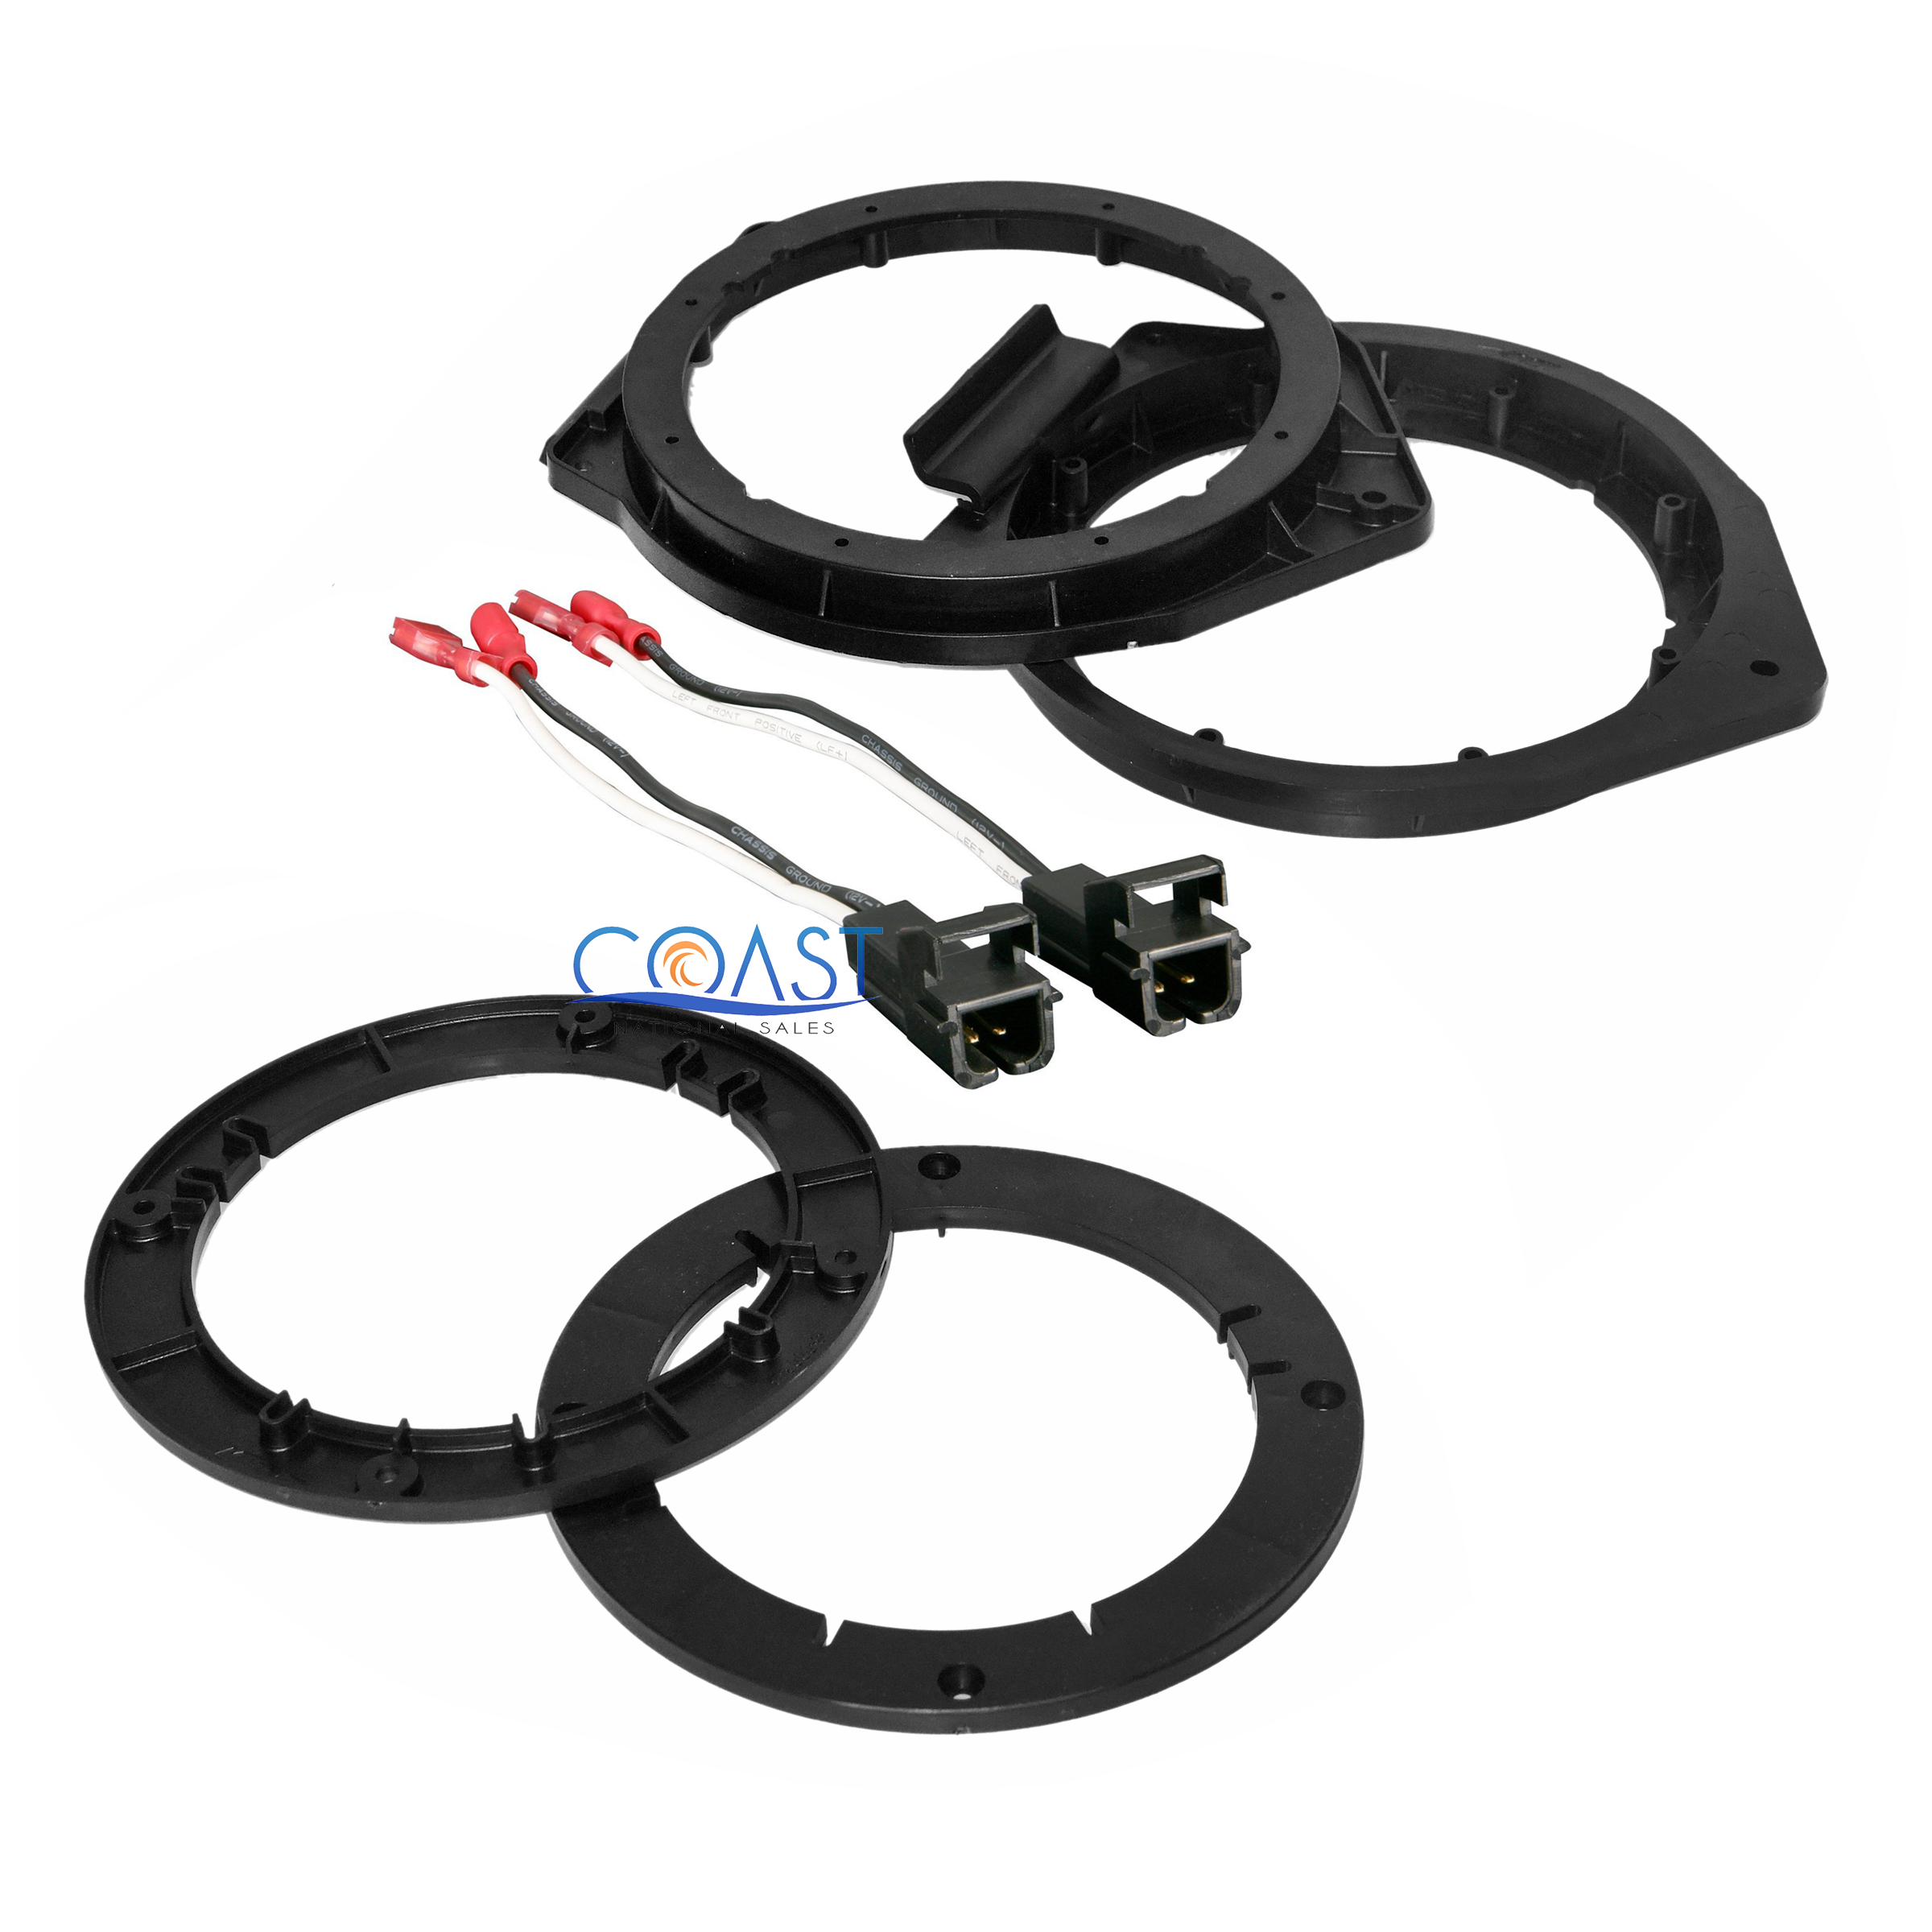 Wiring Harness Adapter For Gm Vehicles : Metra car audio quot speaker adapter plates with